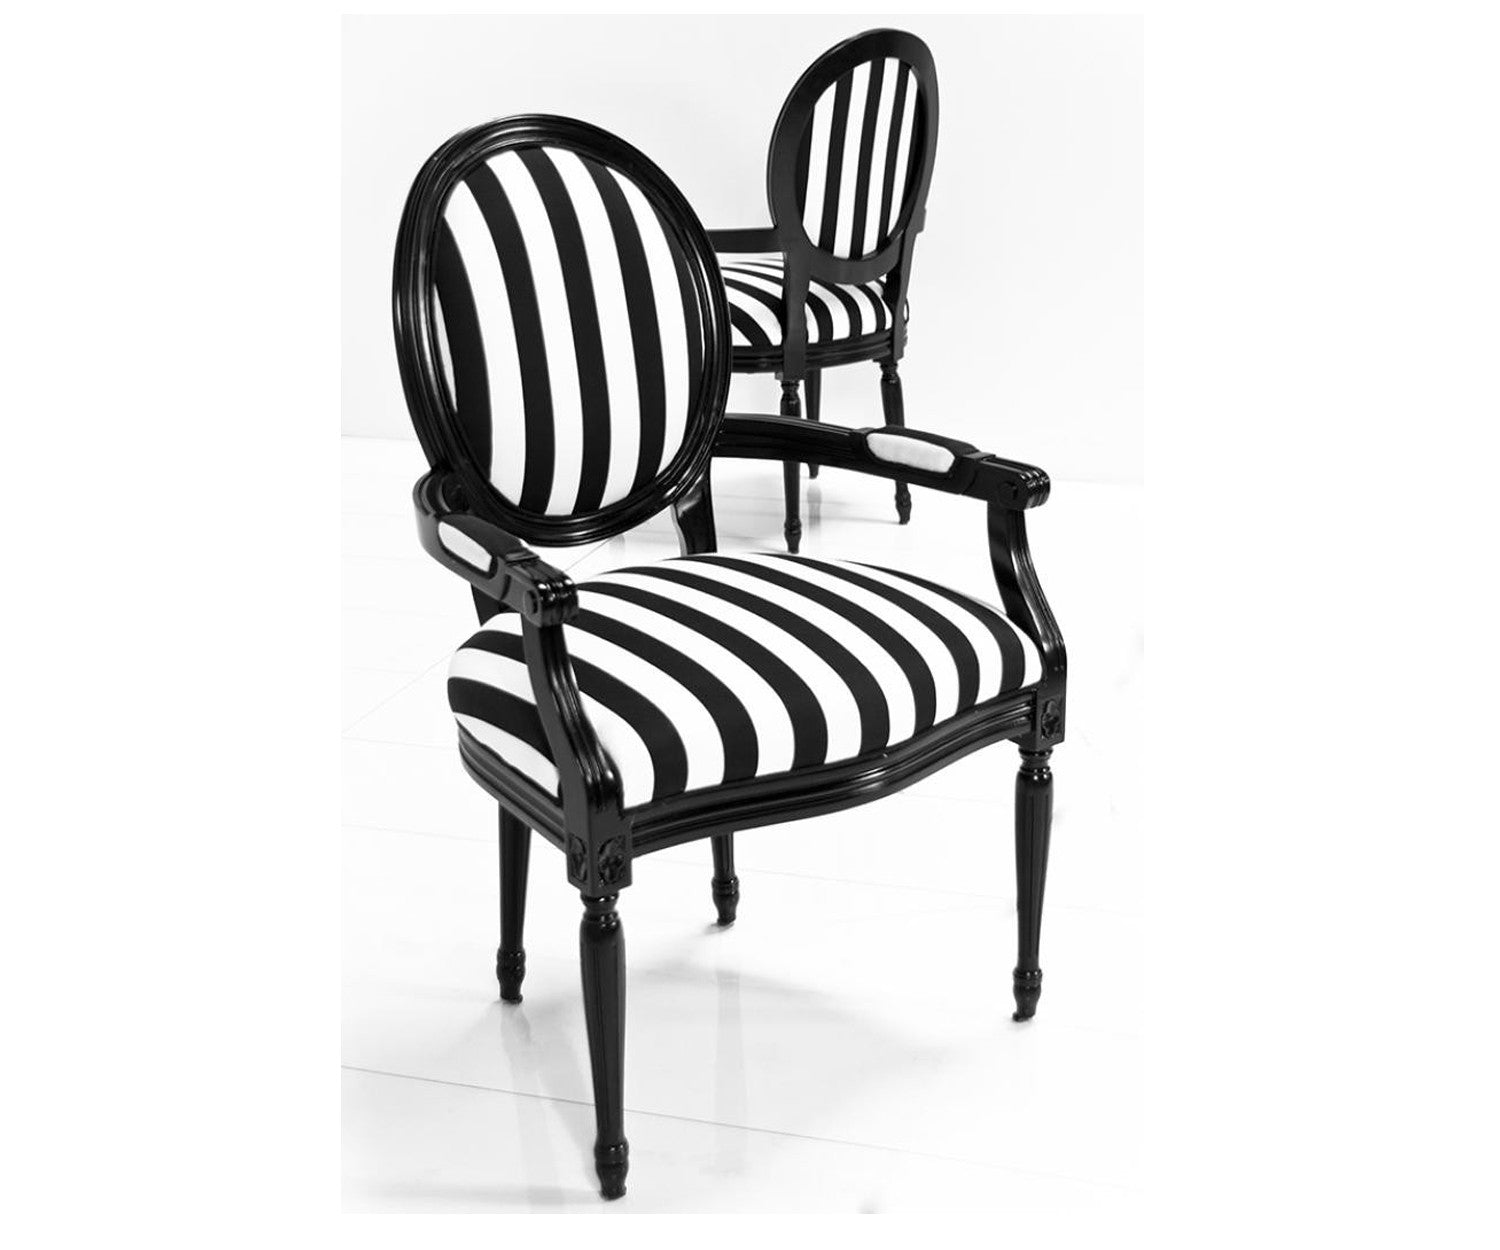 Louis Dining Arm Chair in Black & White Stripe Fabric - Louis Dining Arm Chair In Black & White Stripe Fabric - ModShop